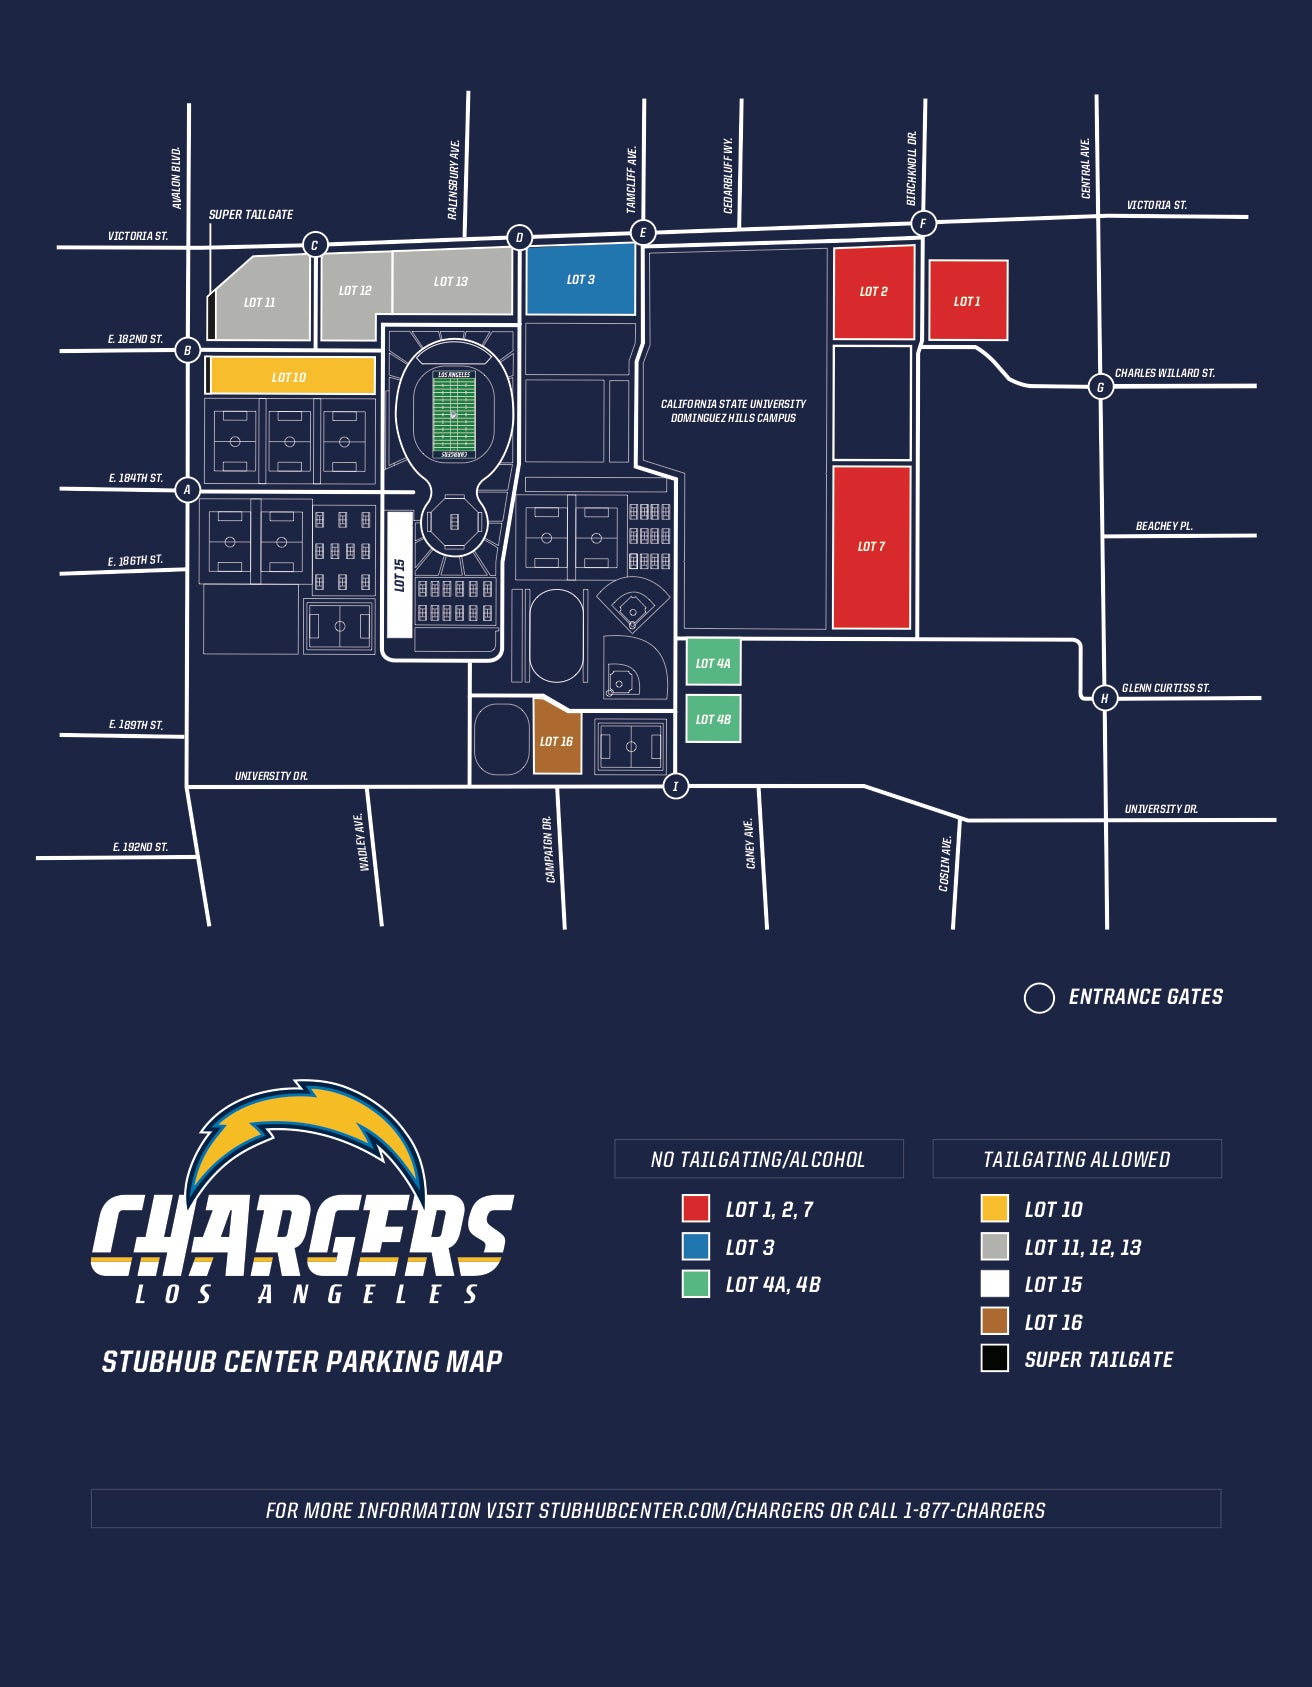 2018-19 chargers parking map_8.5x11.jpg